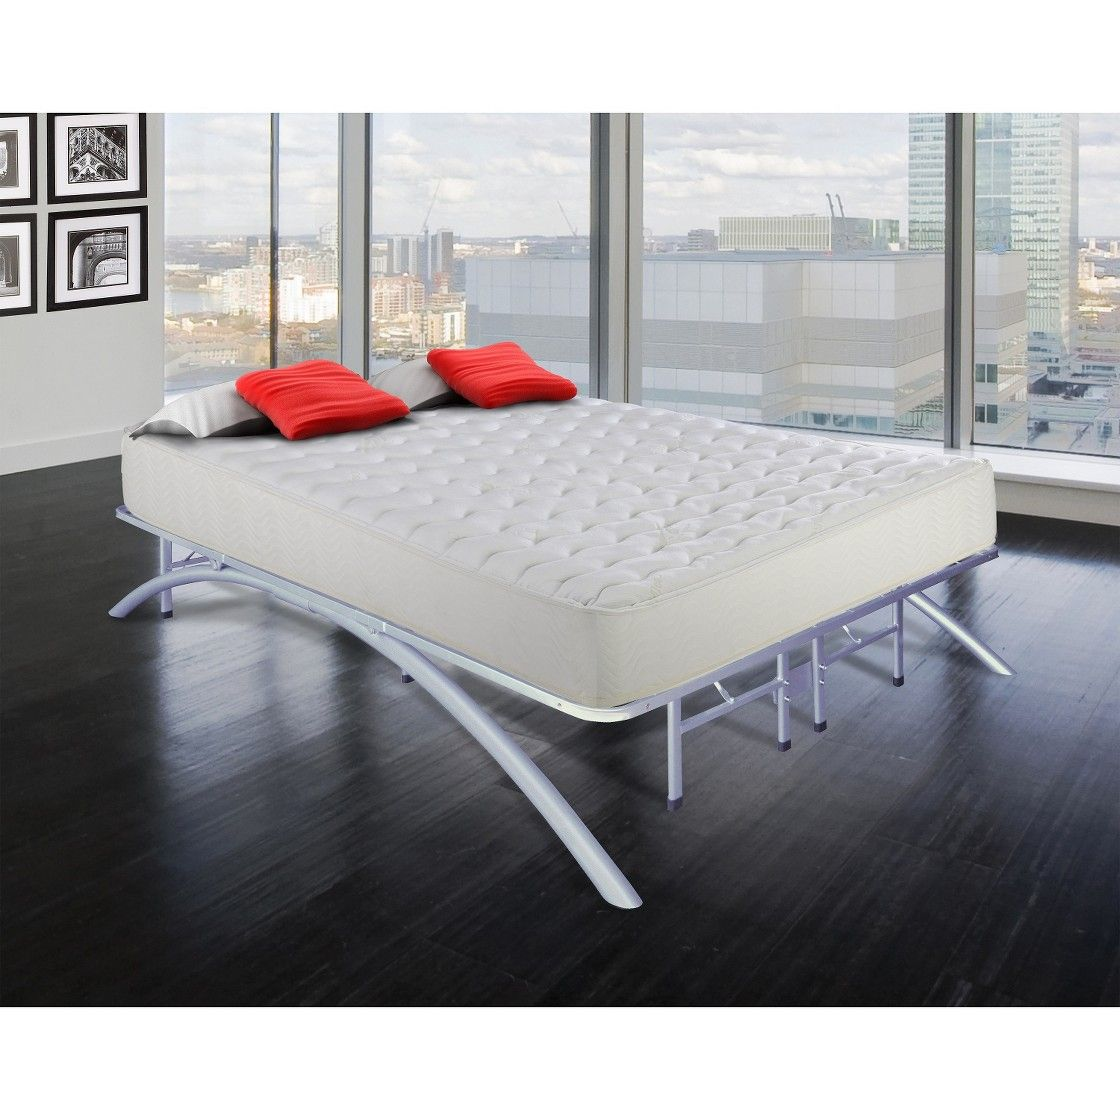 Arch Support Platform Bed Frame Maison Deco